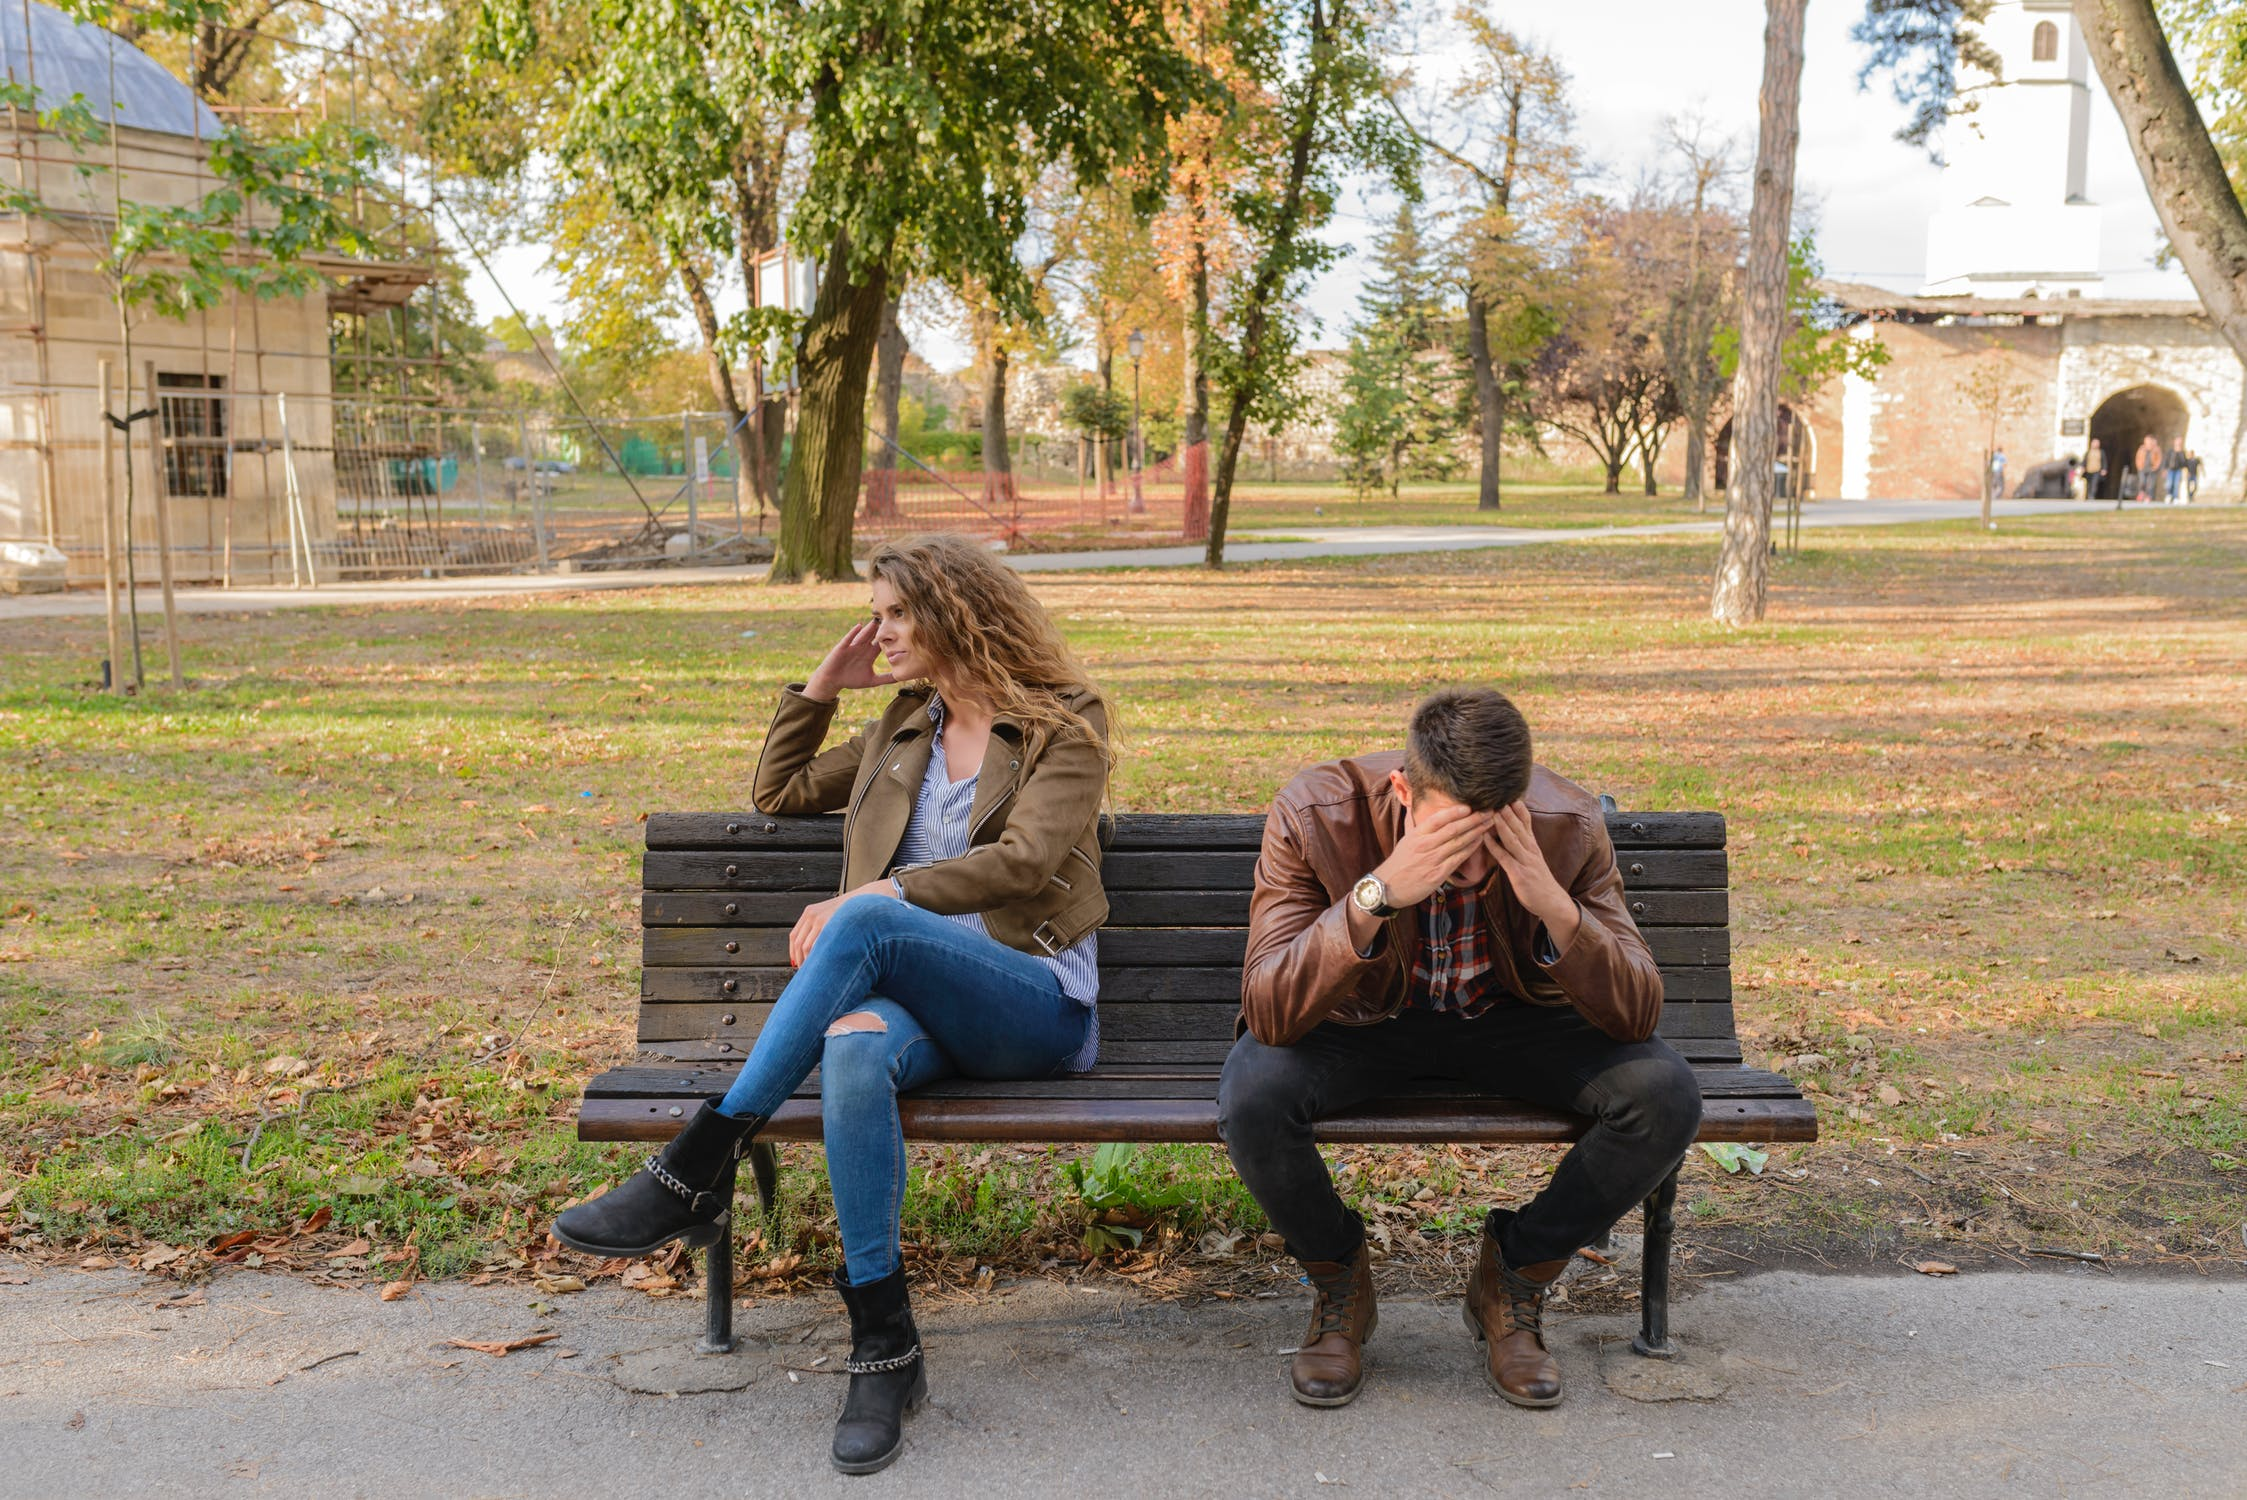 11 Things To Consider Before Asking For a Divorce